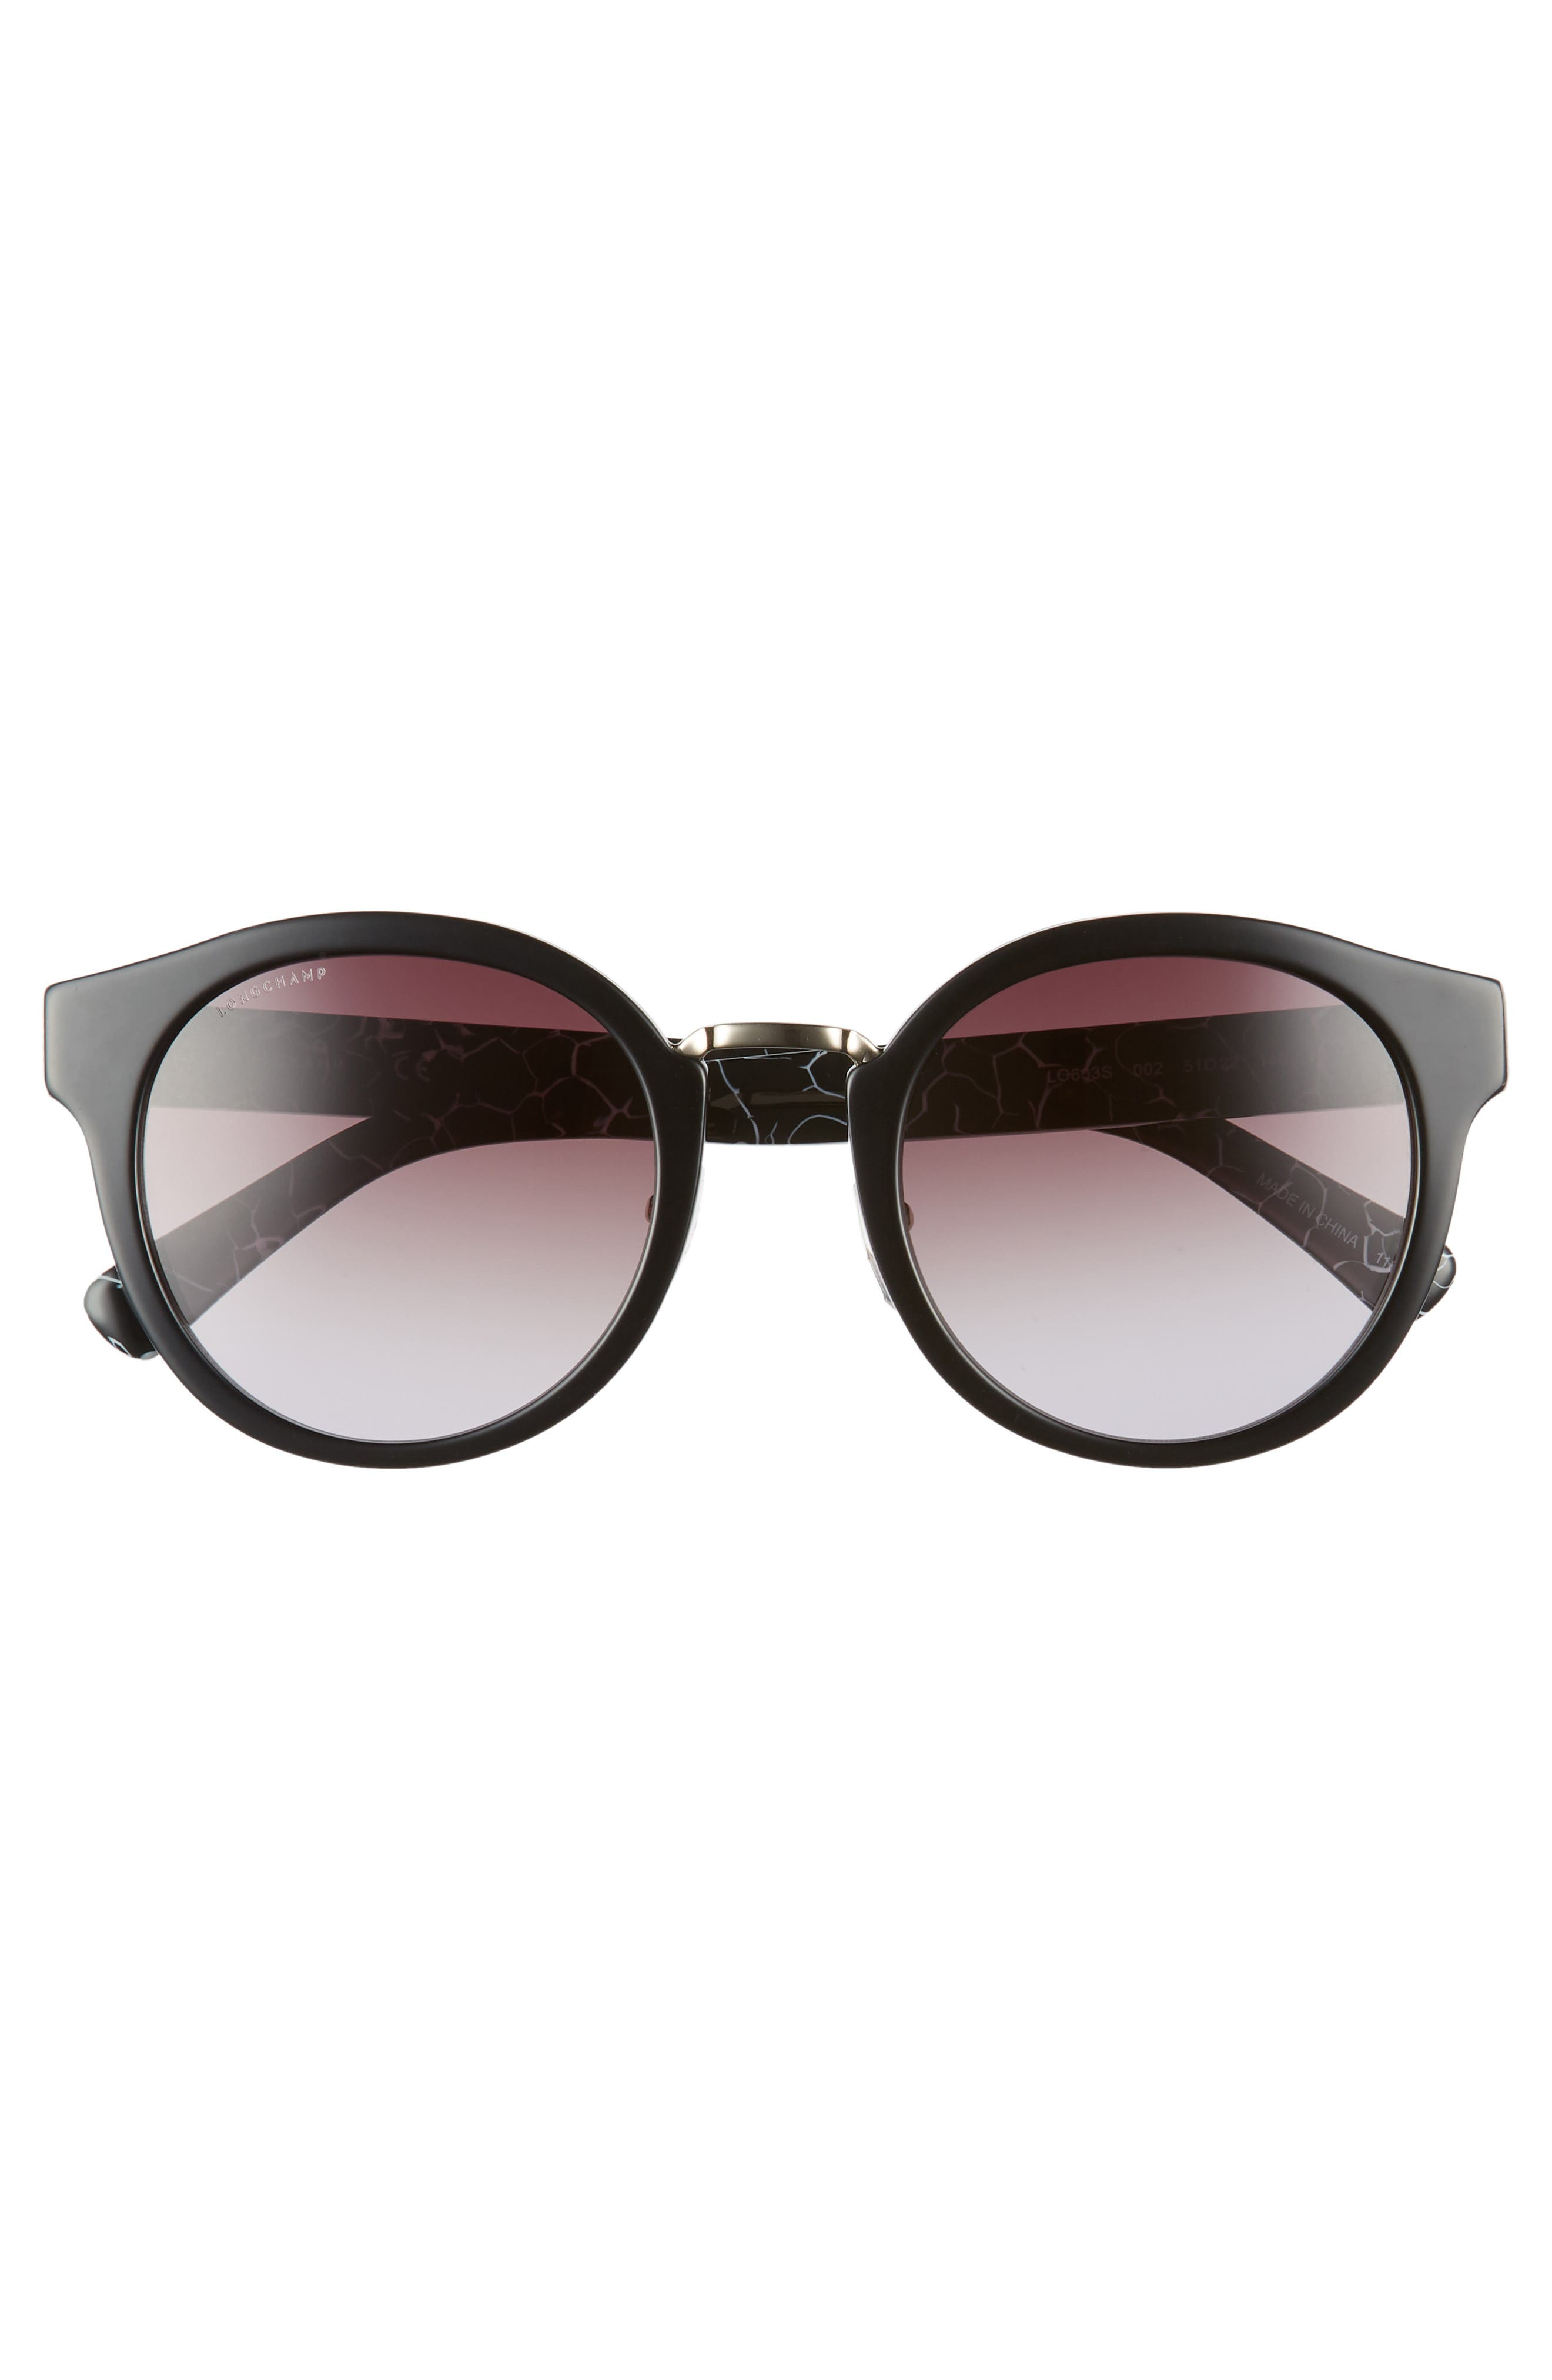 51mm Round Sunglasses,                             Alternate thumbnail 3, color,                             Marble Black